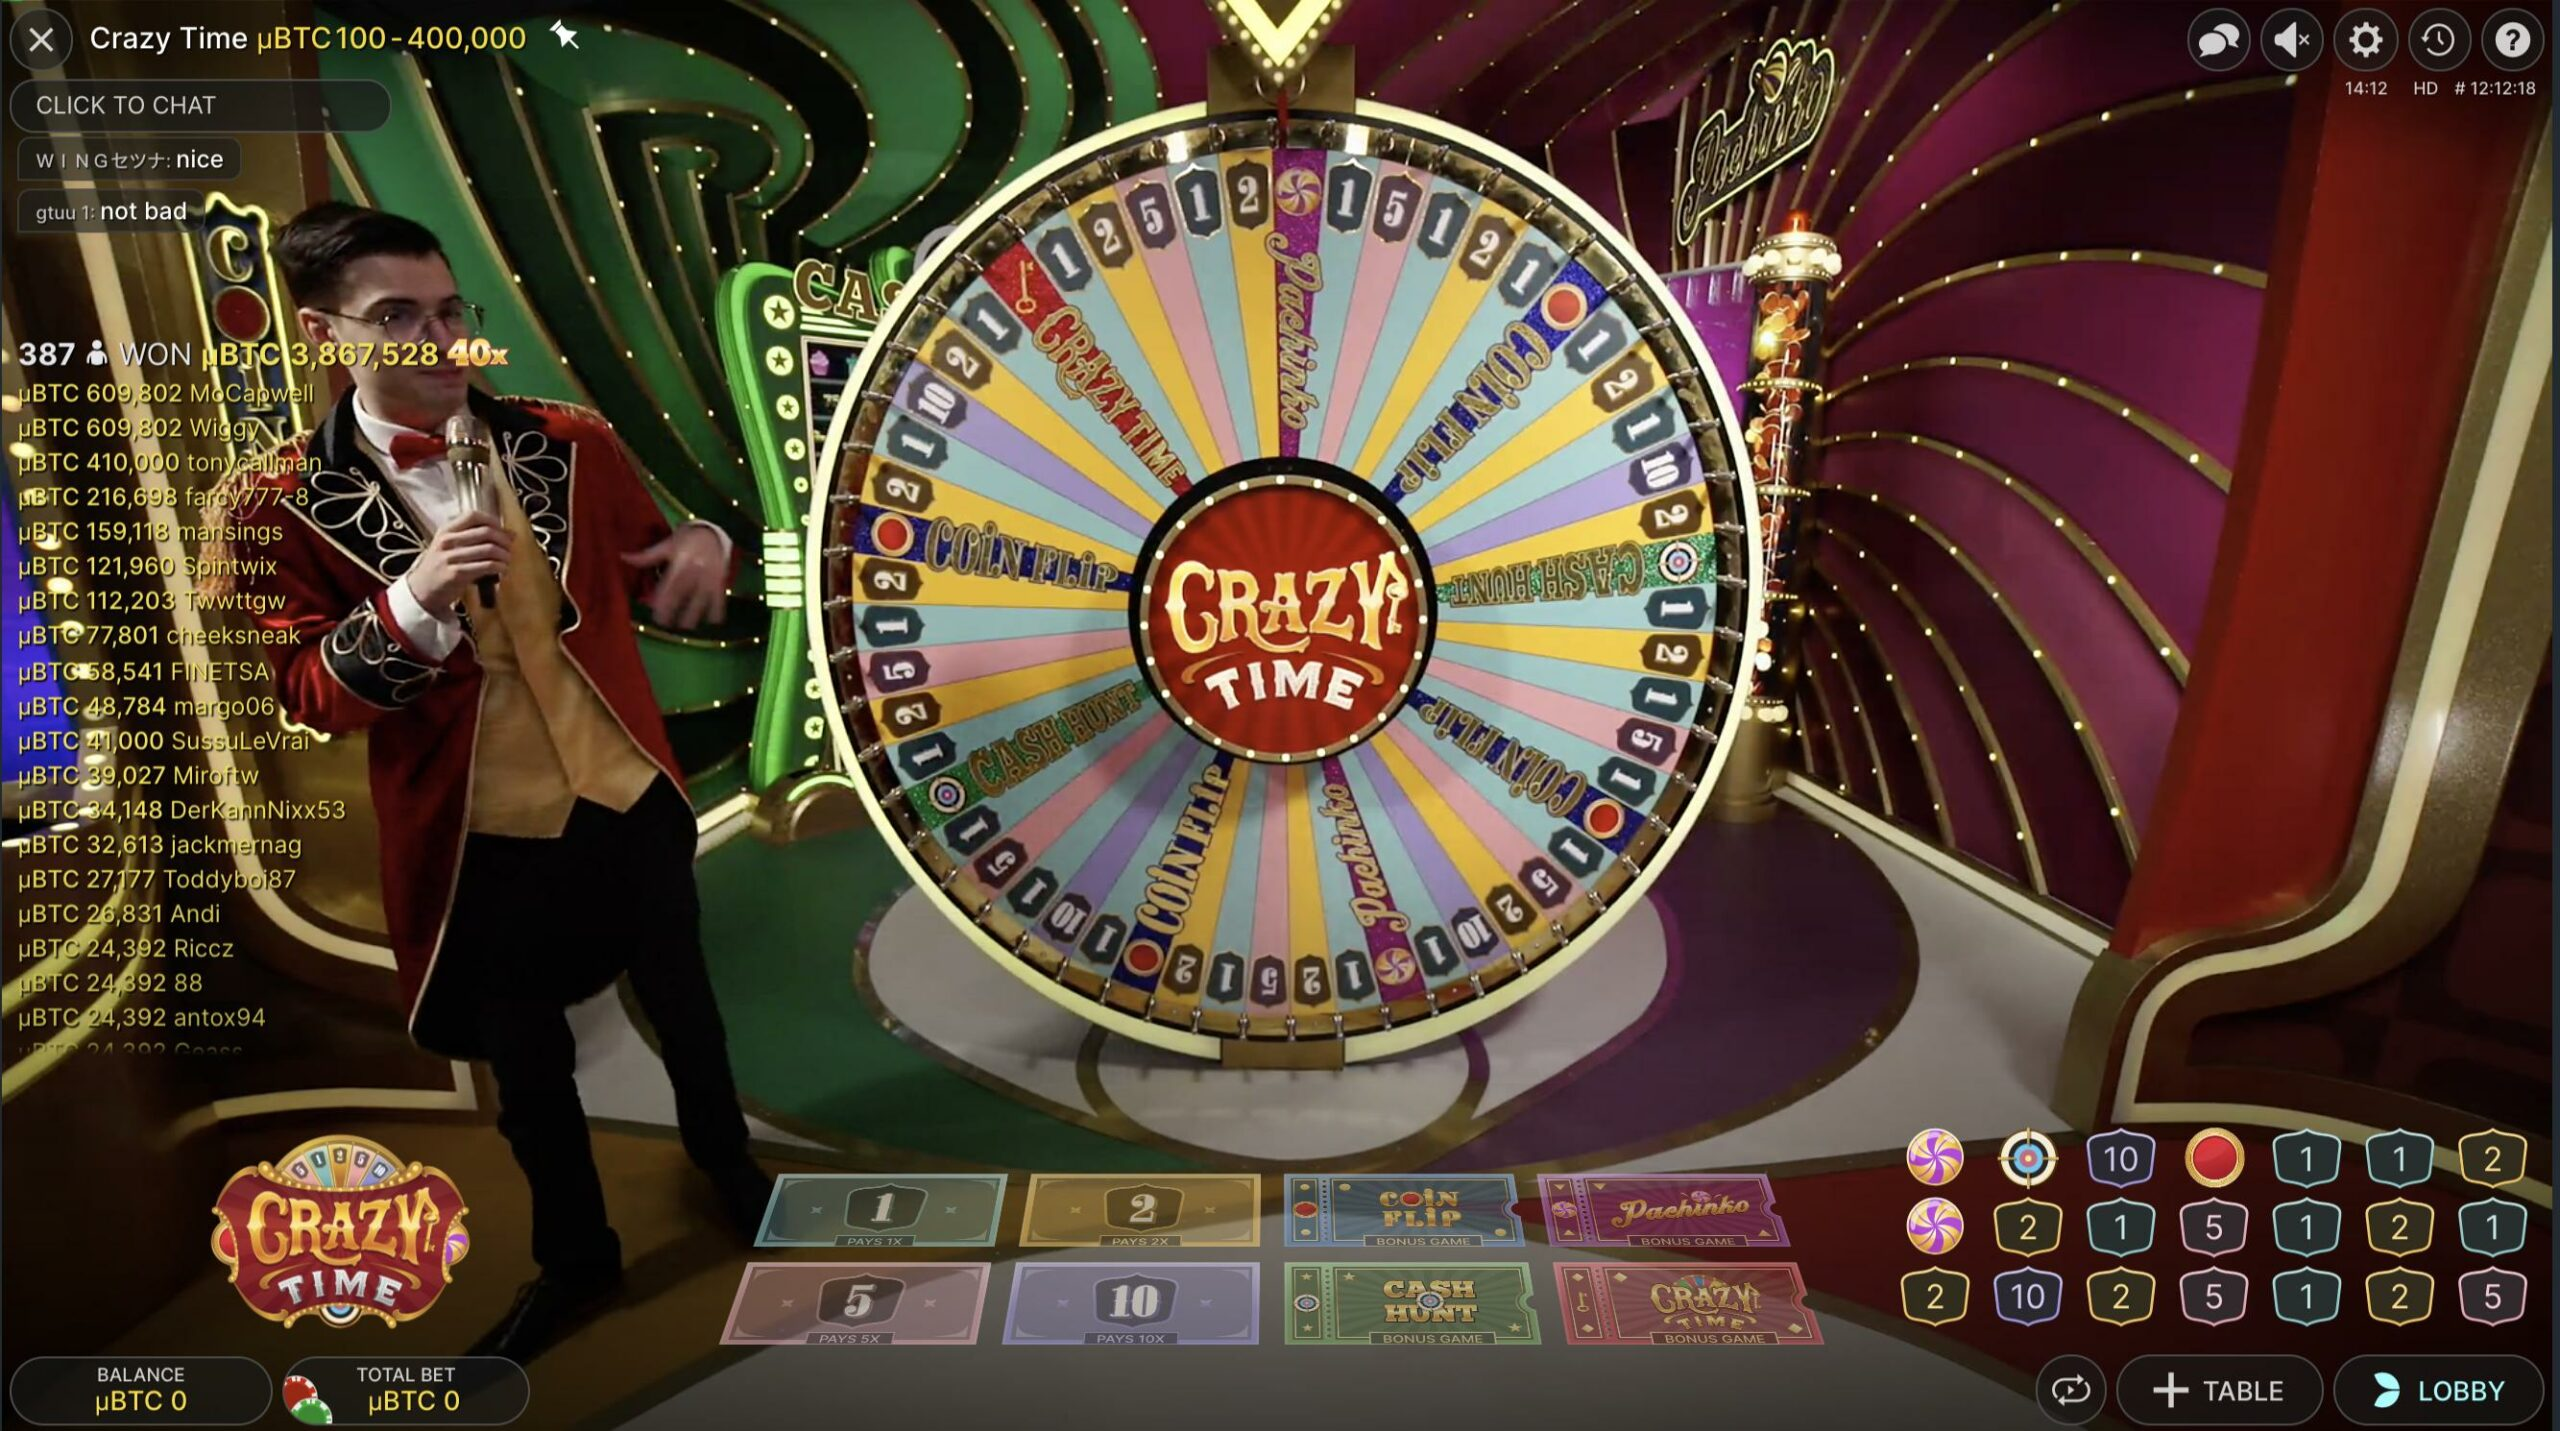 Crazy Time Is The Craziest Live Casino Game Ever